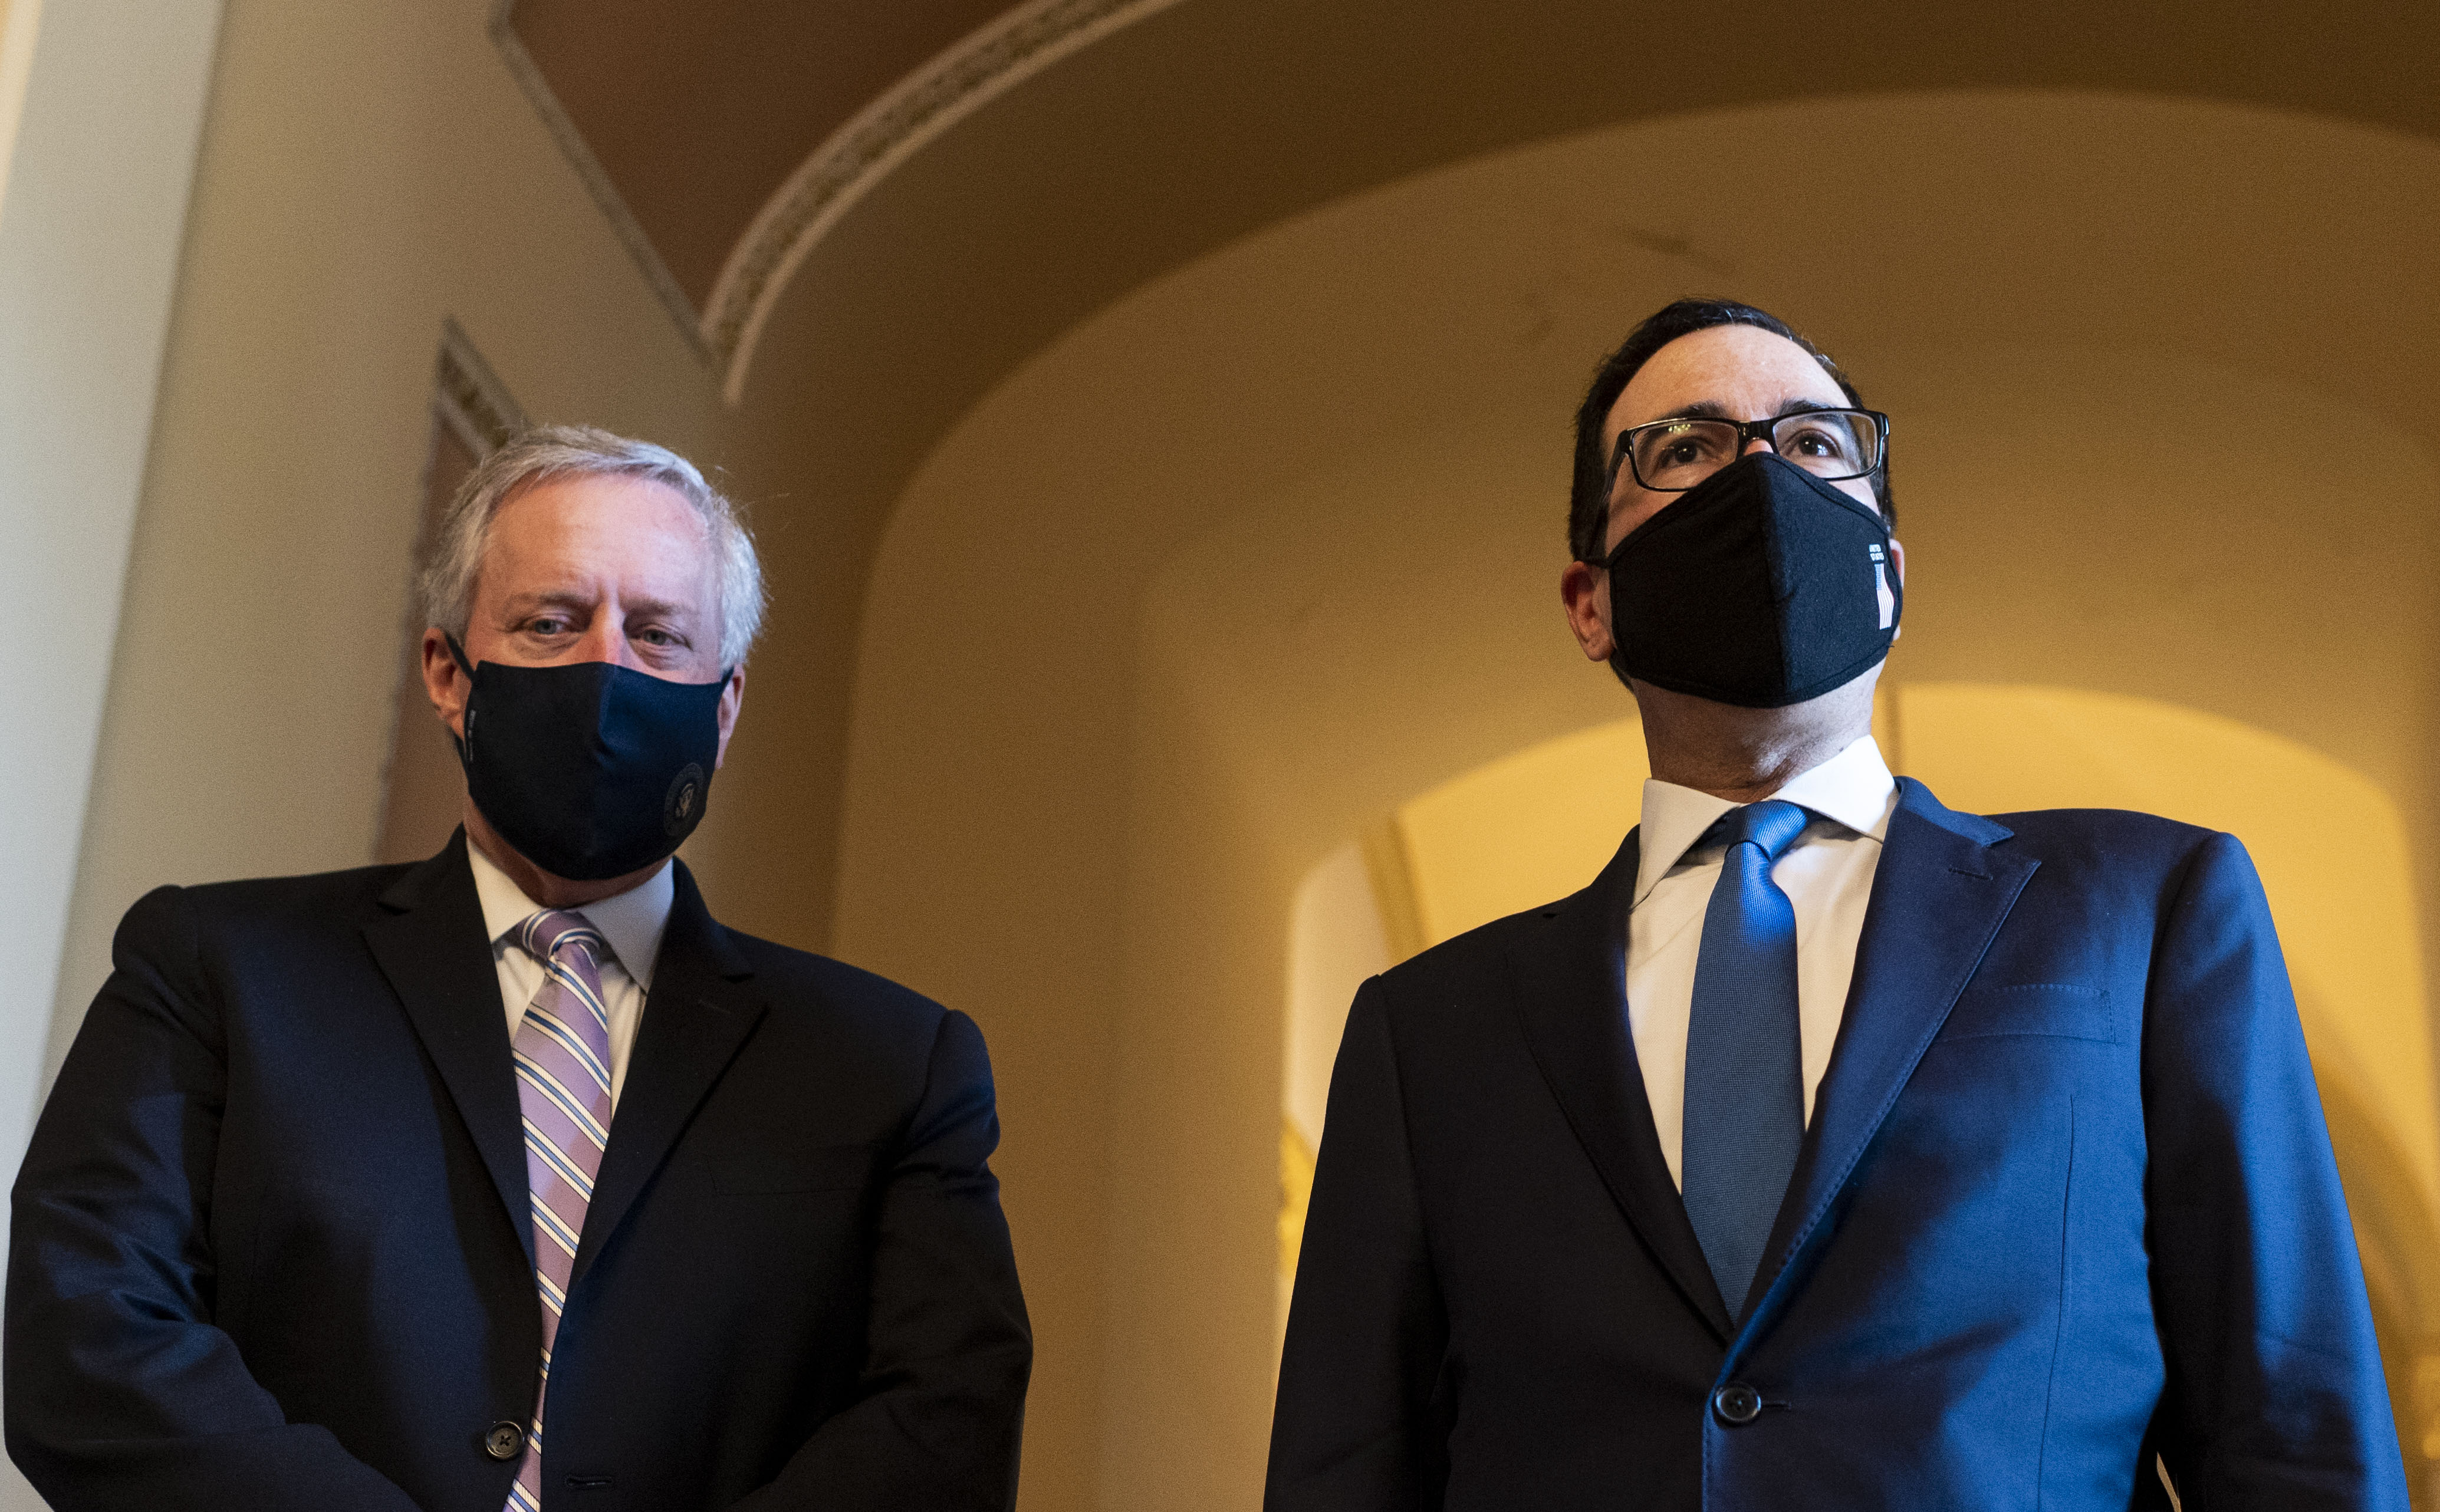 White House Chief of Staff Mark Meadows, left, and Treasury Secretary Steven Mnuchin speak to reporters as they leave a coronavirus aid meeting in Washington, DC, on July 23.